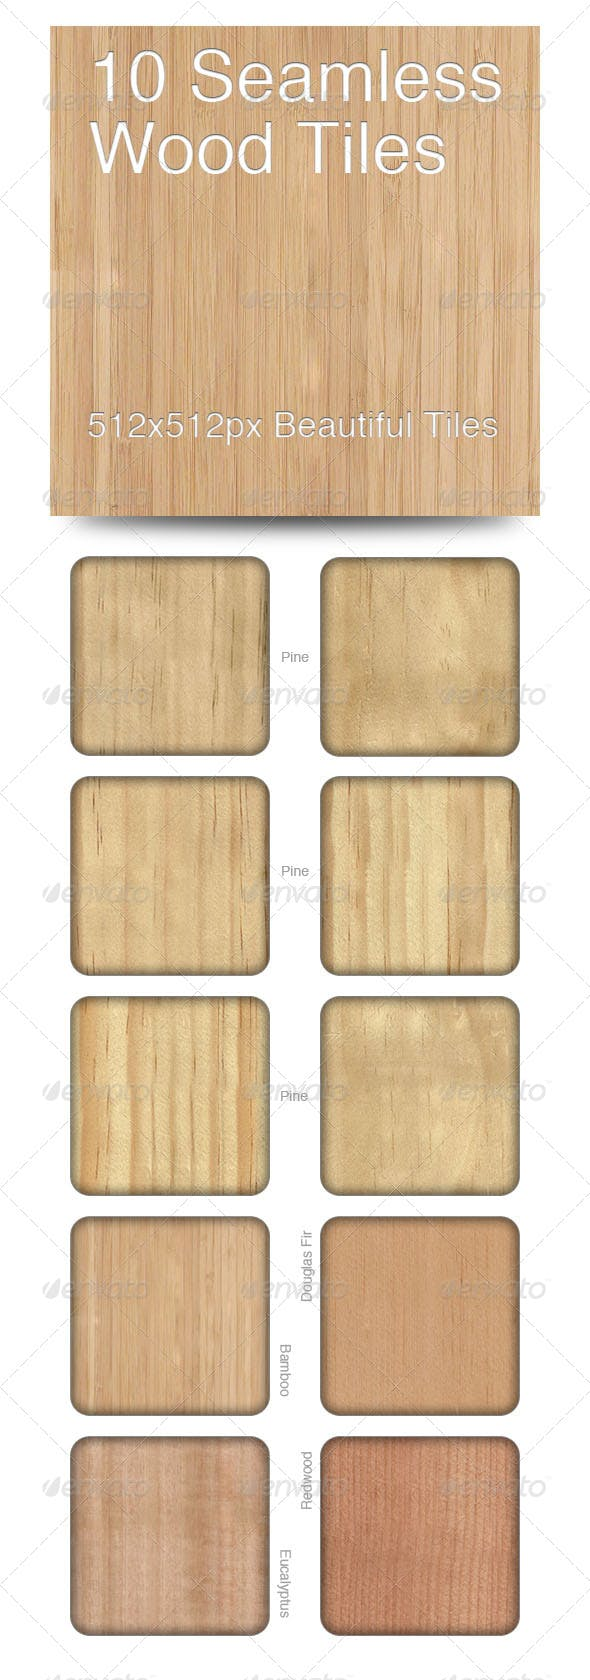 10 Seamless Wood Tiles - 3DOcean Item for Sale